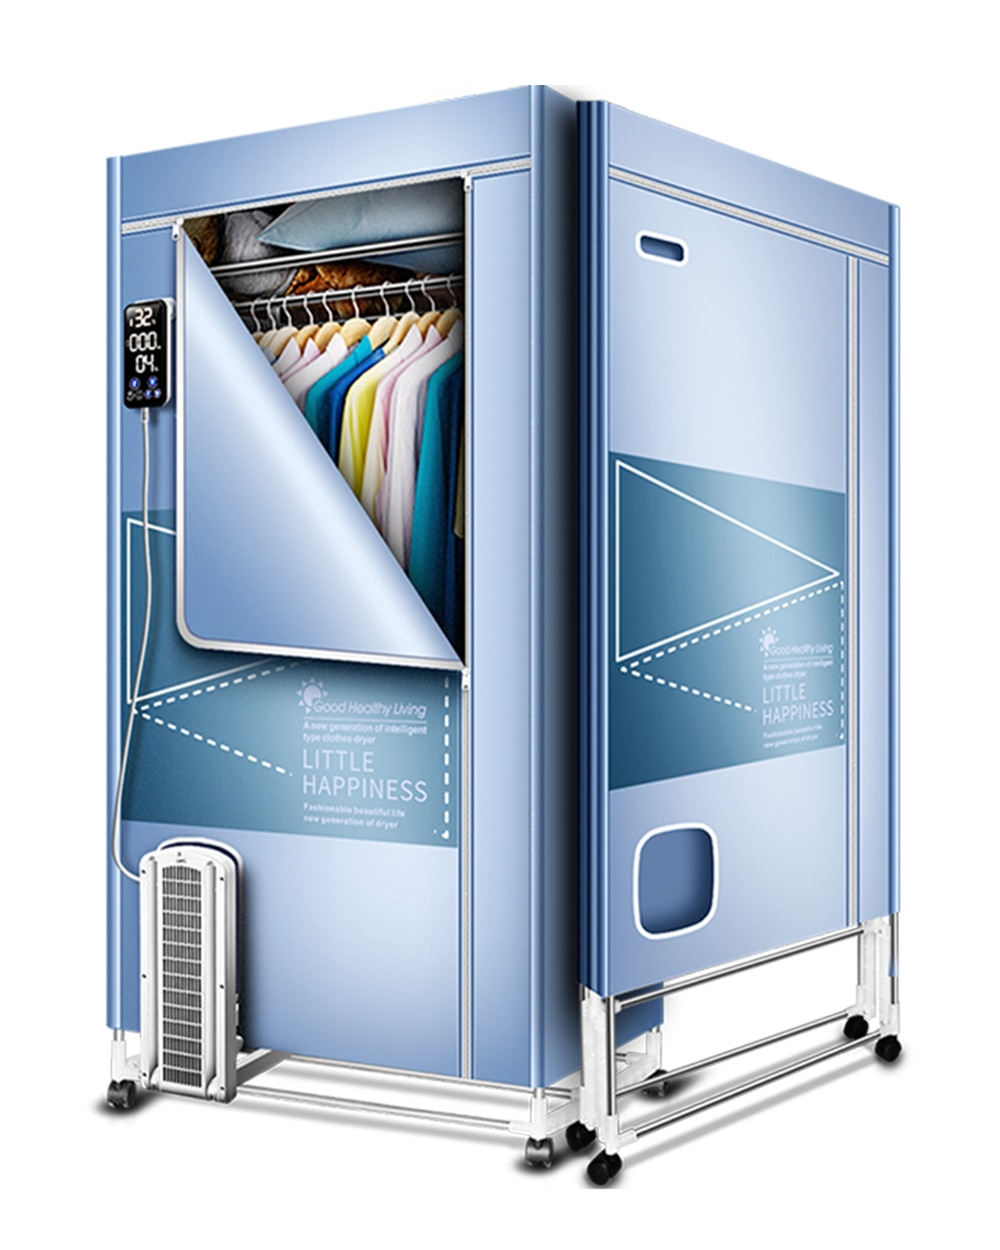 Kasydoff Foldable Clothes Dryer Portable 1500W-1.7 Meters Electric Clothes Drying Rack Energy Saving (Anion) Ventilation Dryer